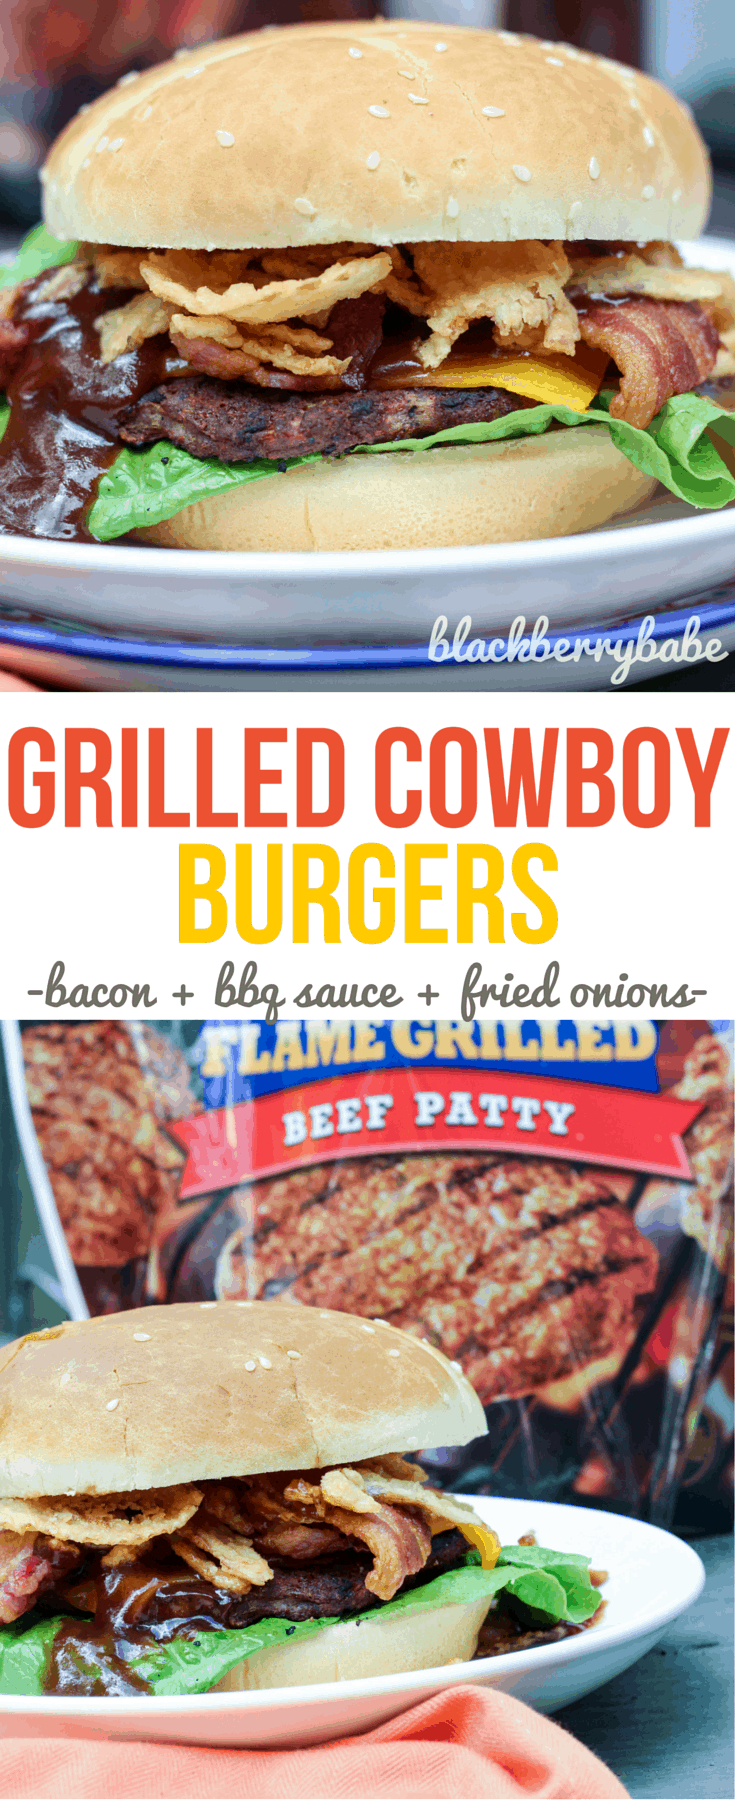 Grilled Cowboy Burgers